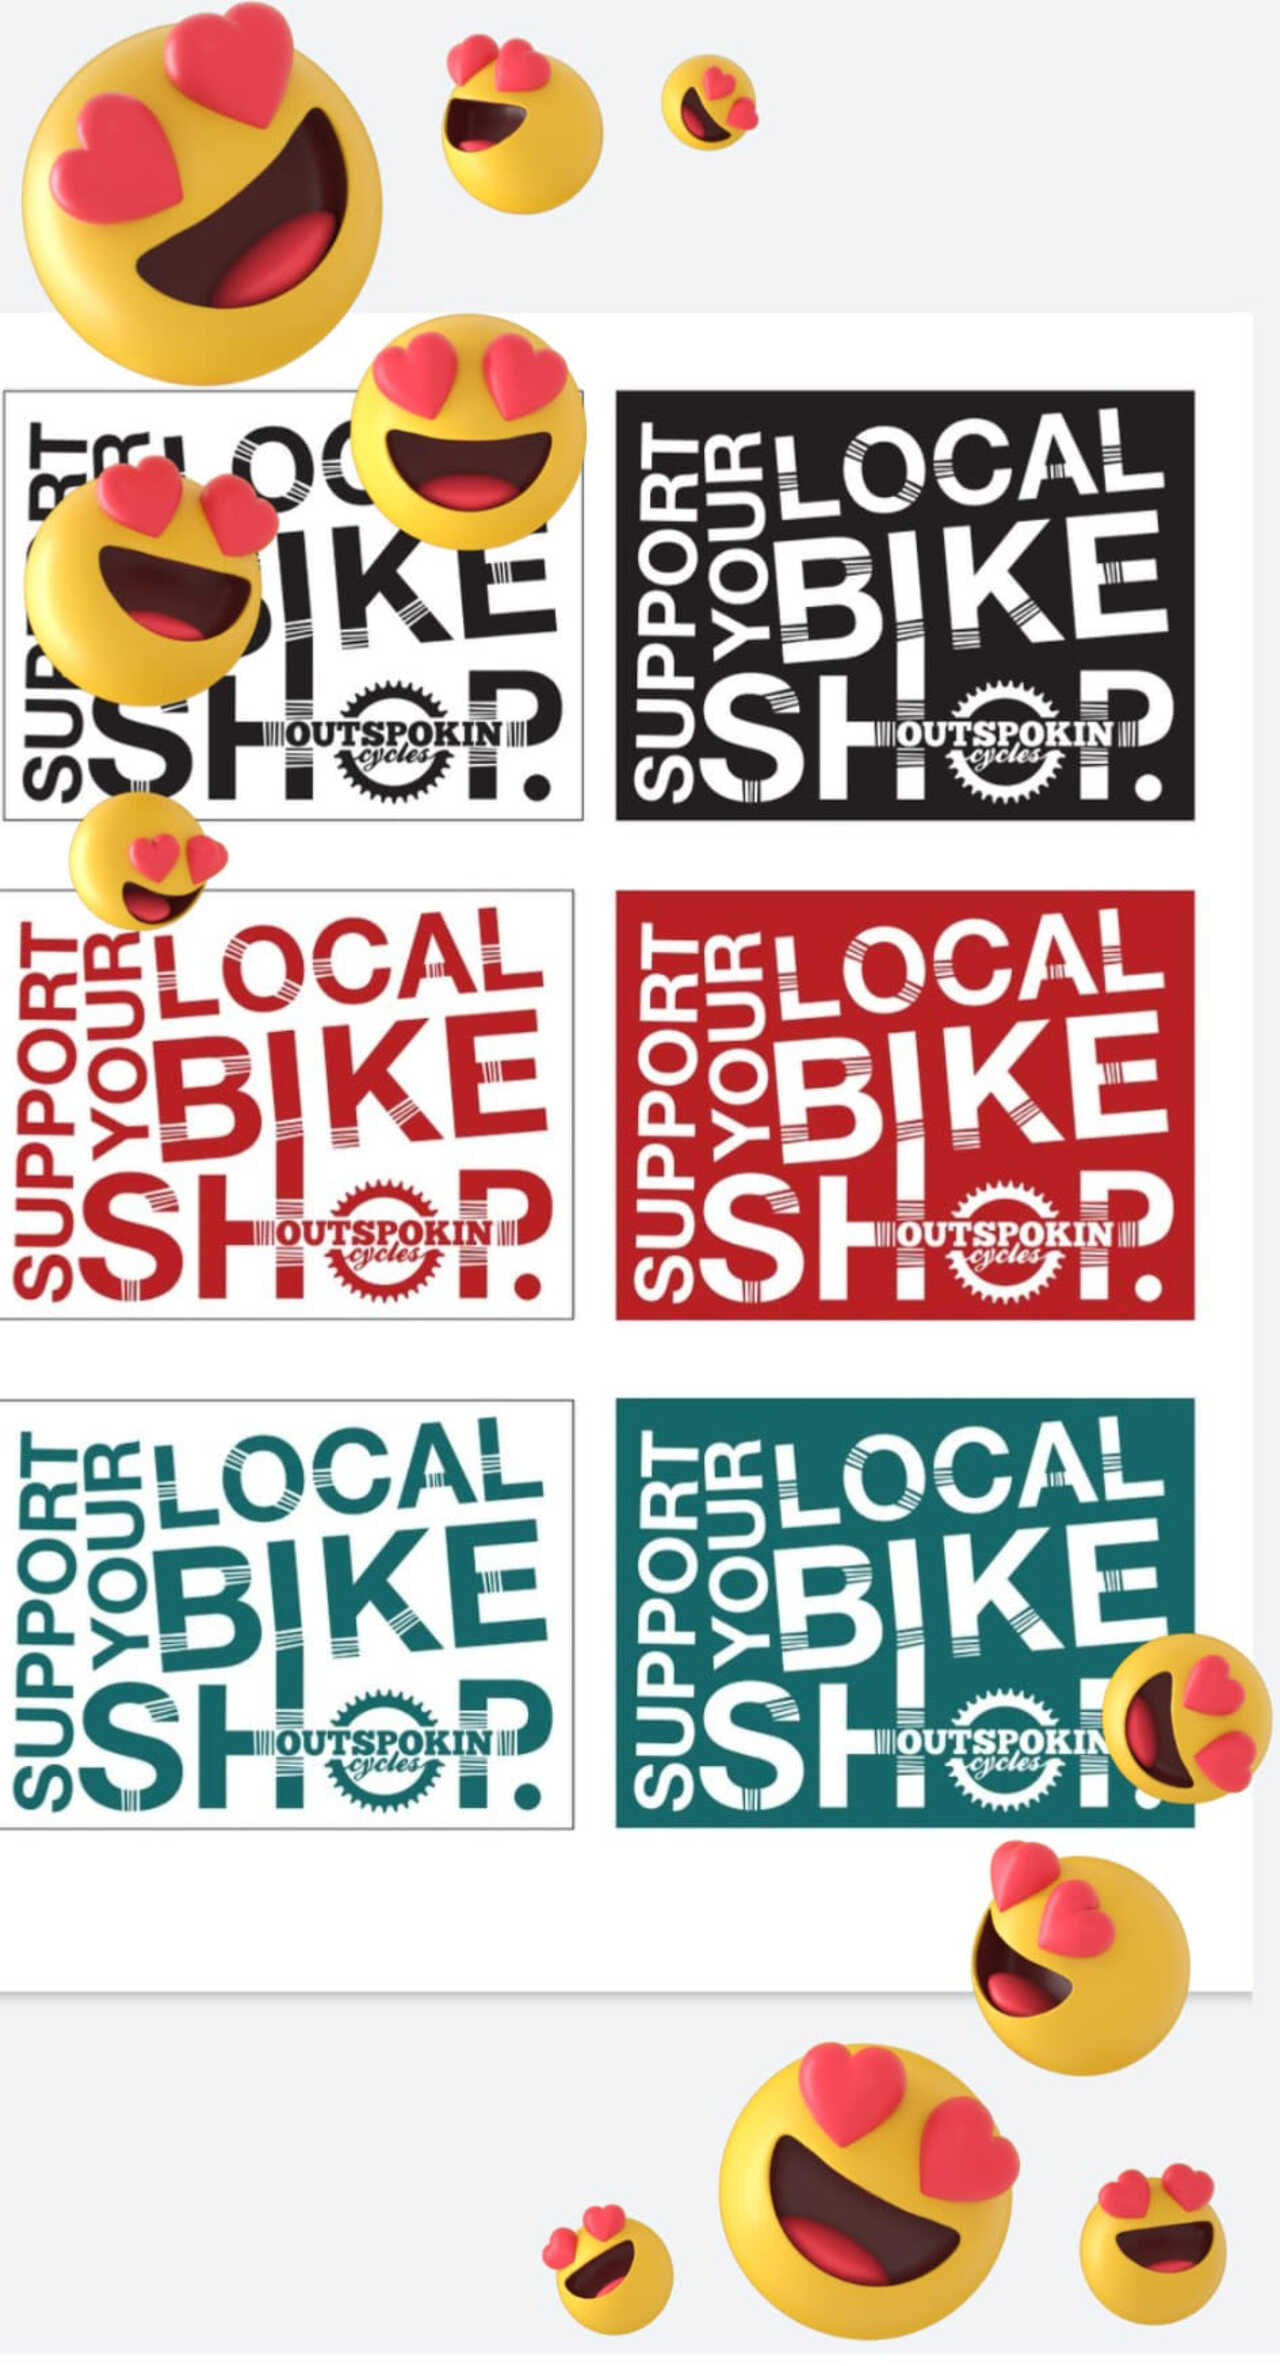 Outspokin cycles - Shop Local - Essential Business in London ON